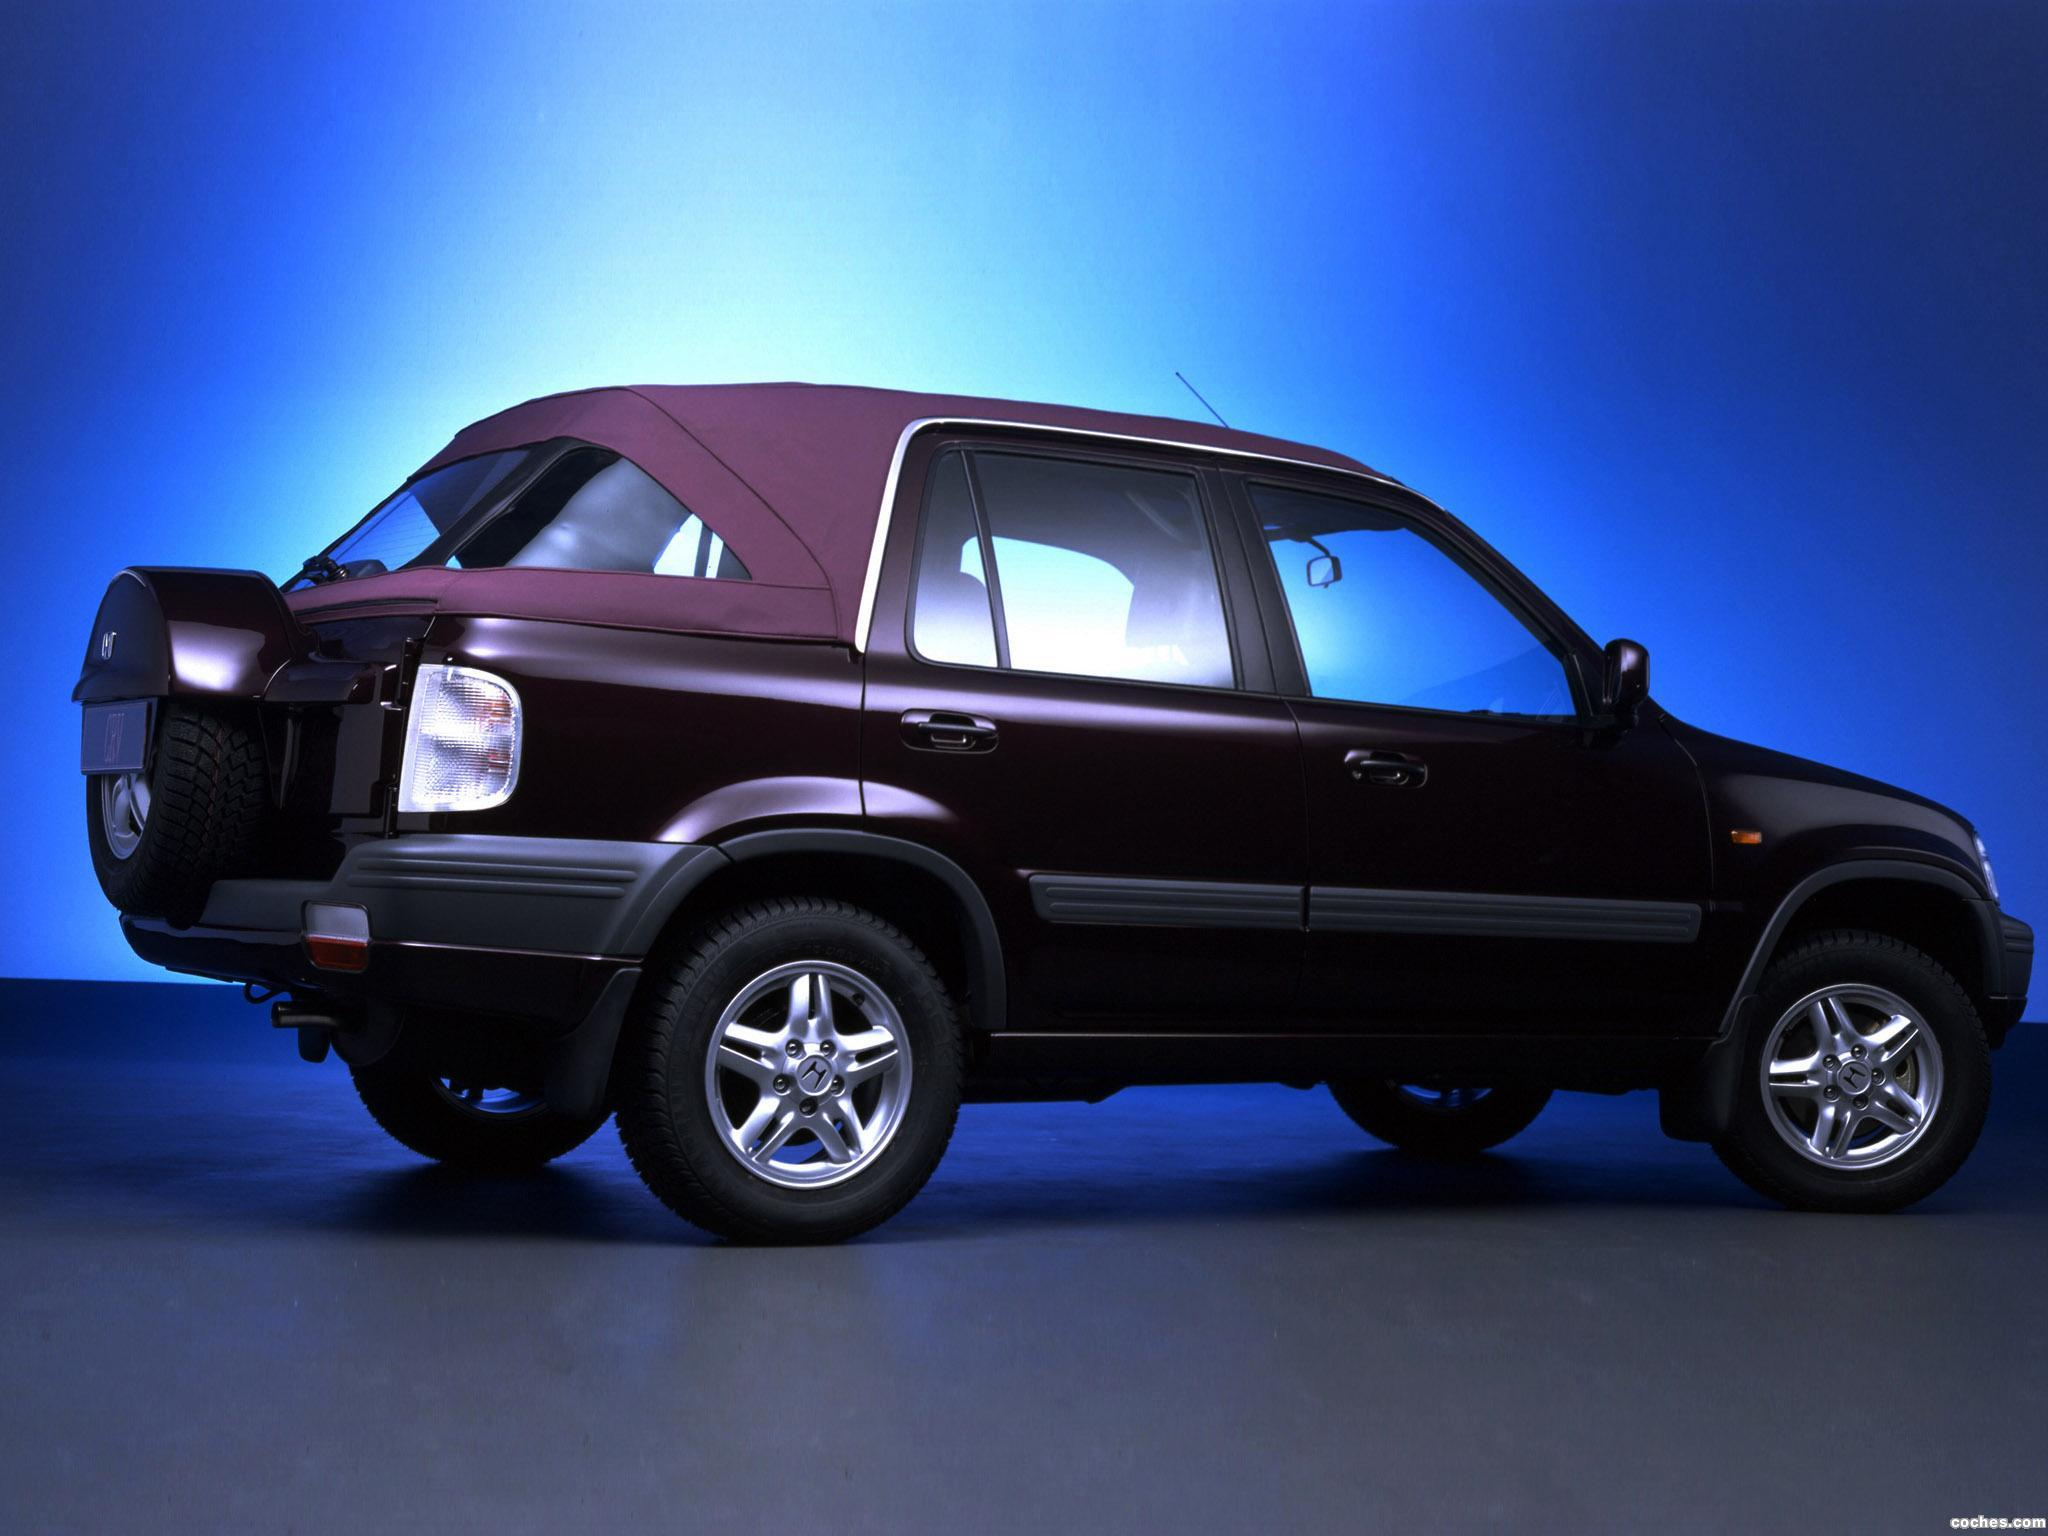 valmet_honda-cr-v-open-air-rd1-1998_r1.jpg